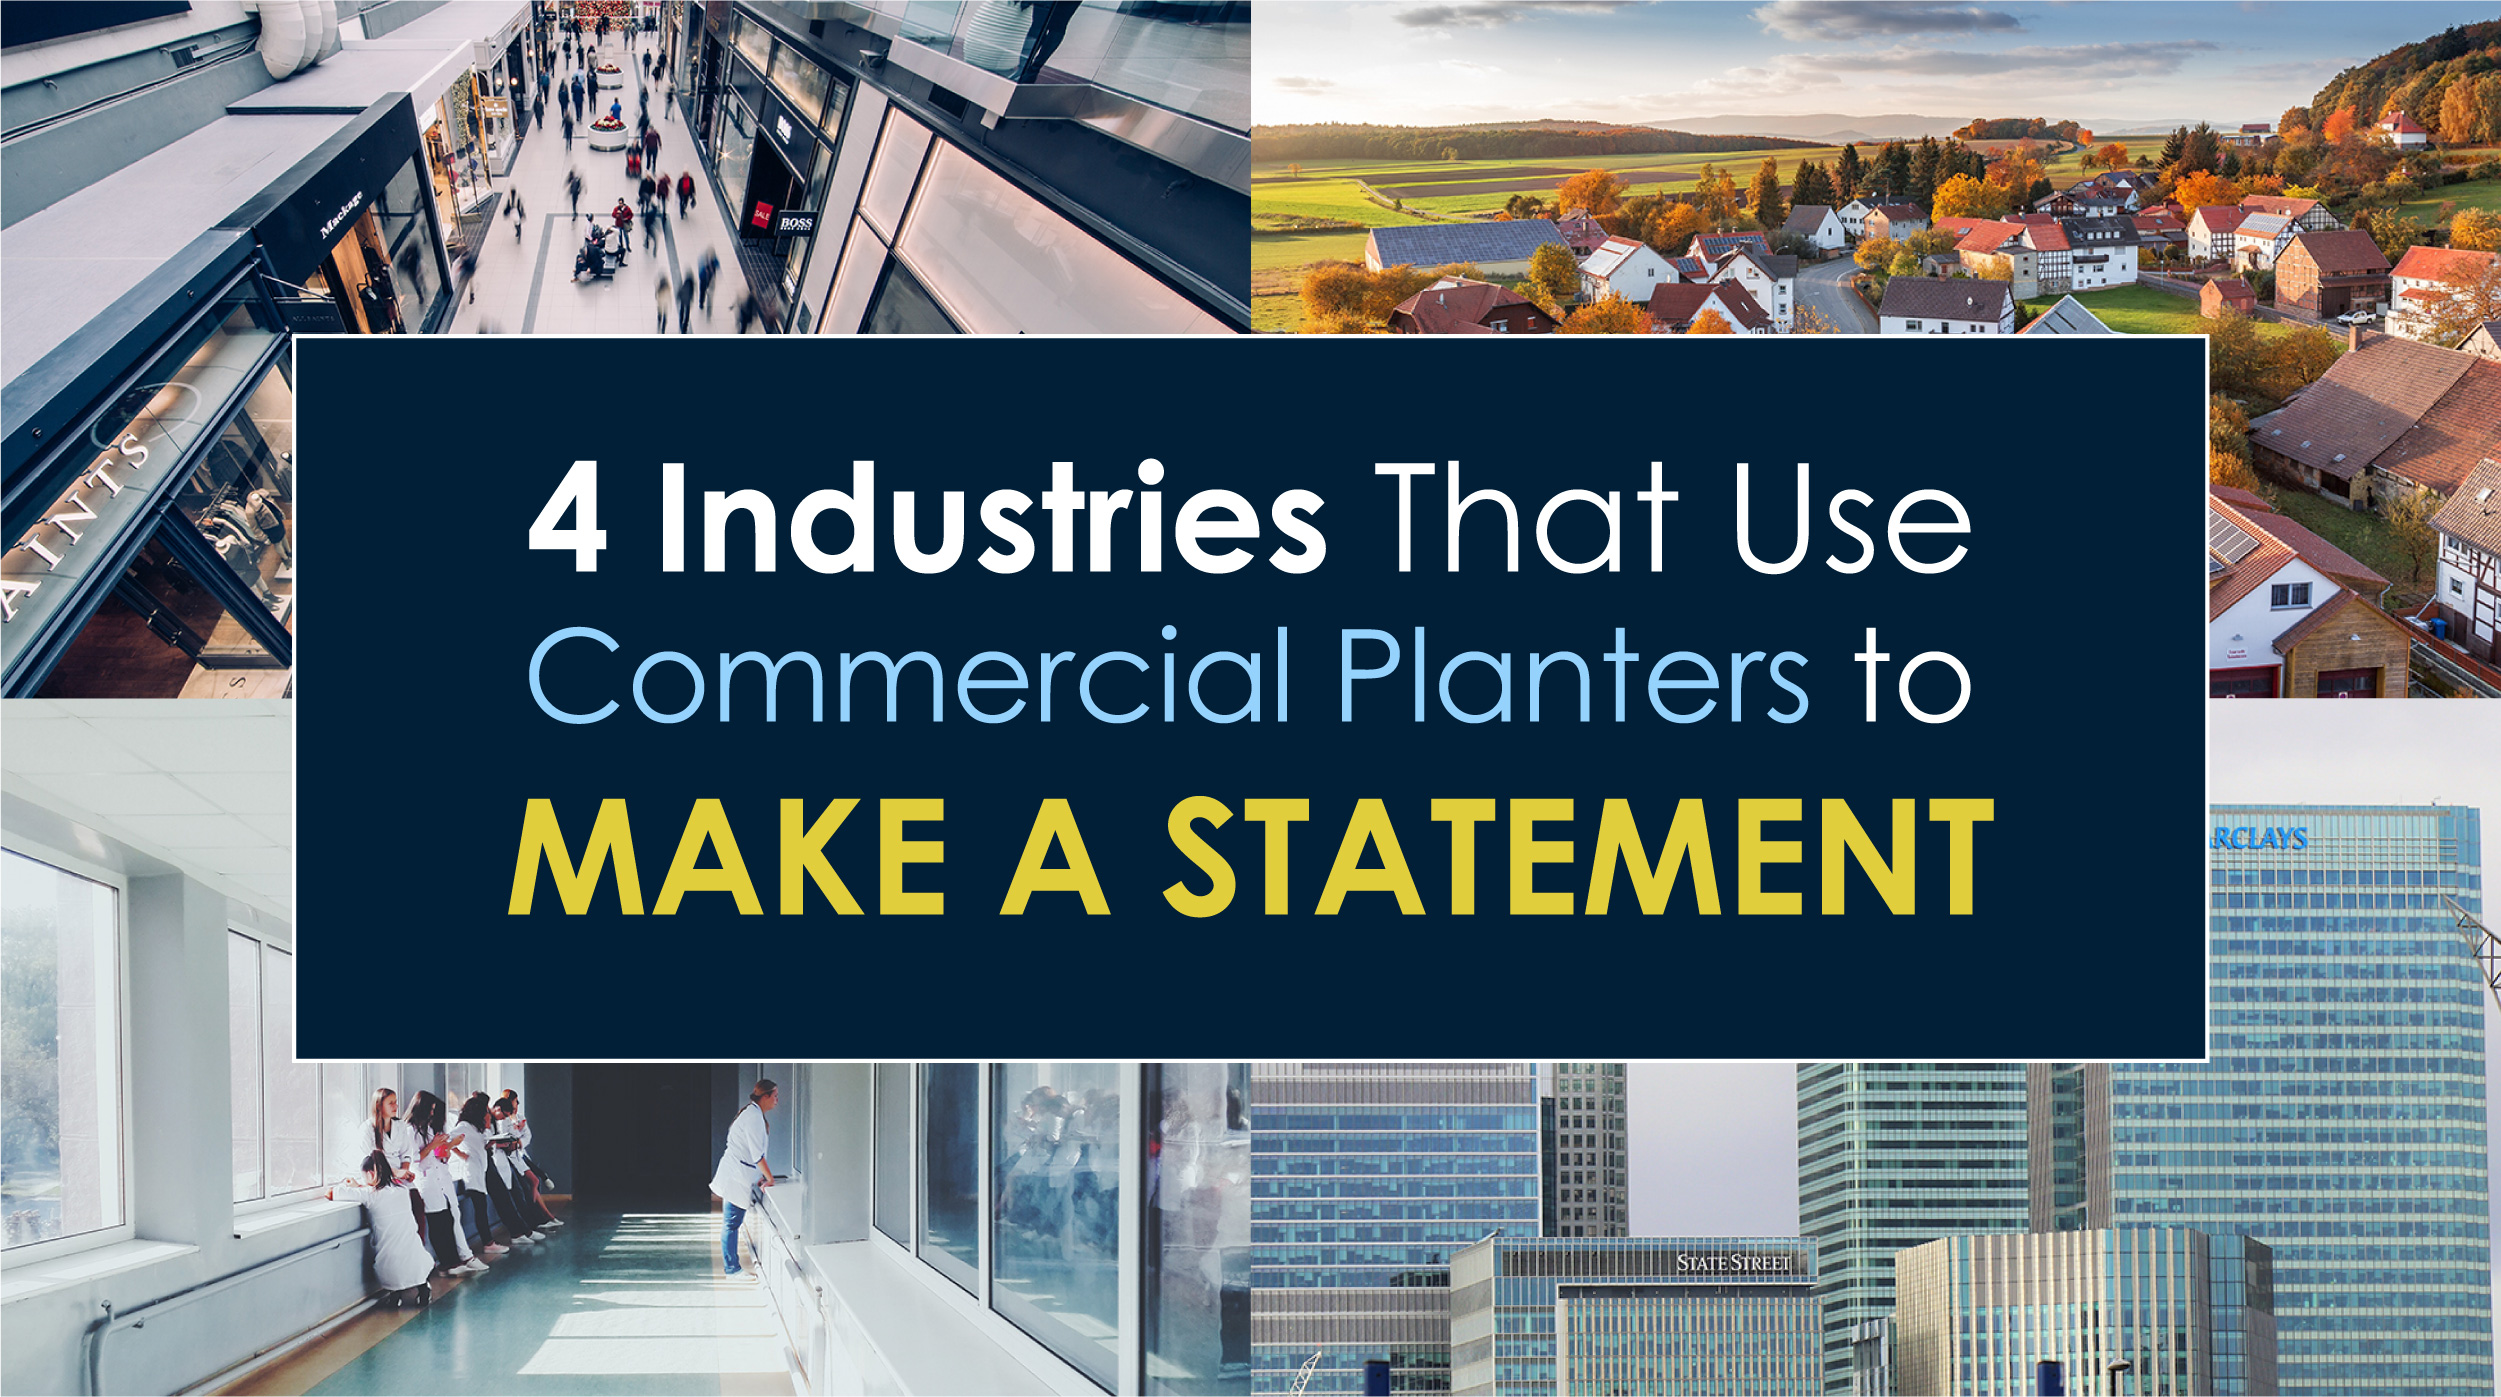 Industries that Use Commercial Planters